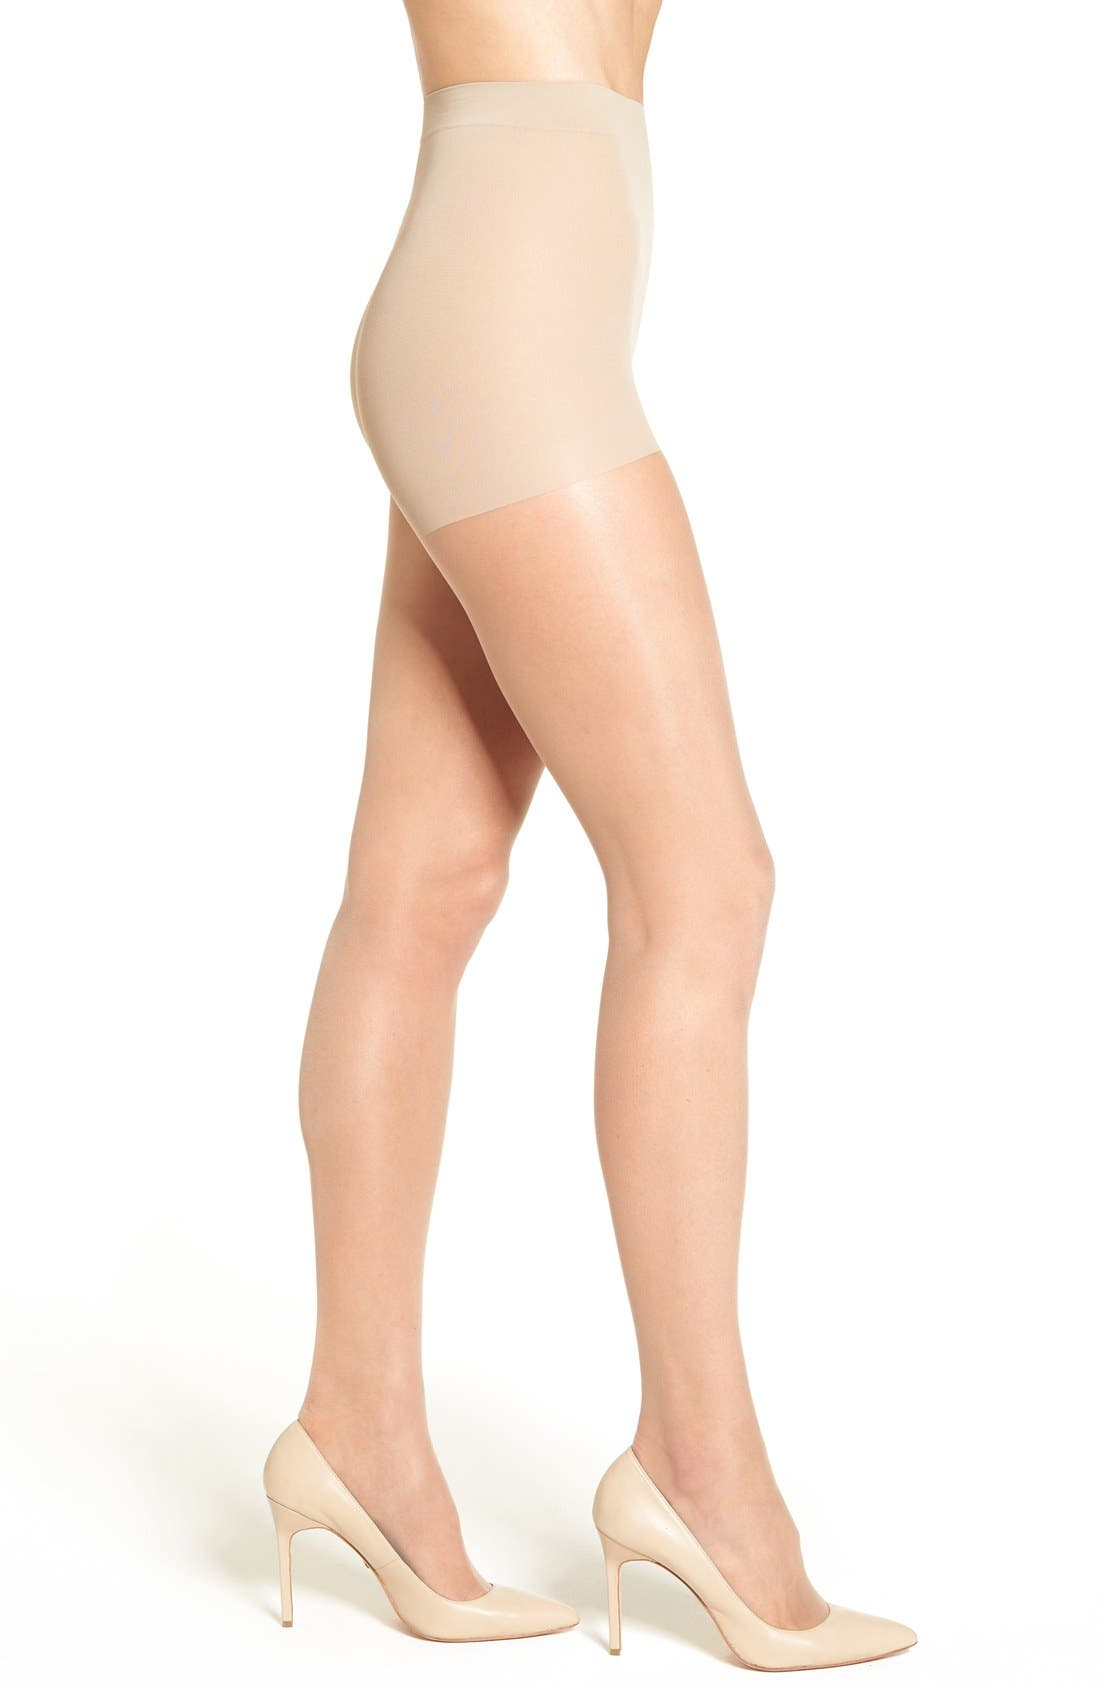 Main Image - Nordstrom Control Top Pantyhose (3 for $36)